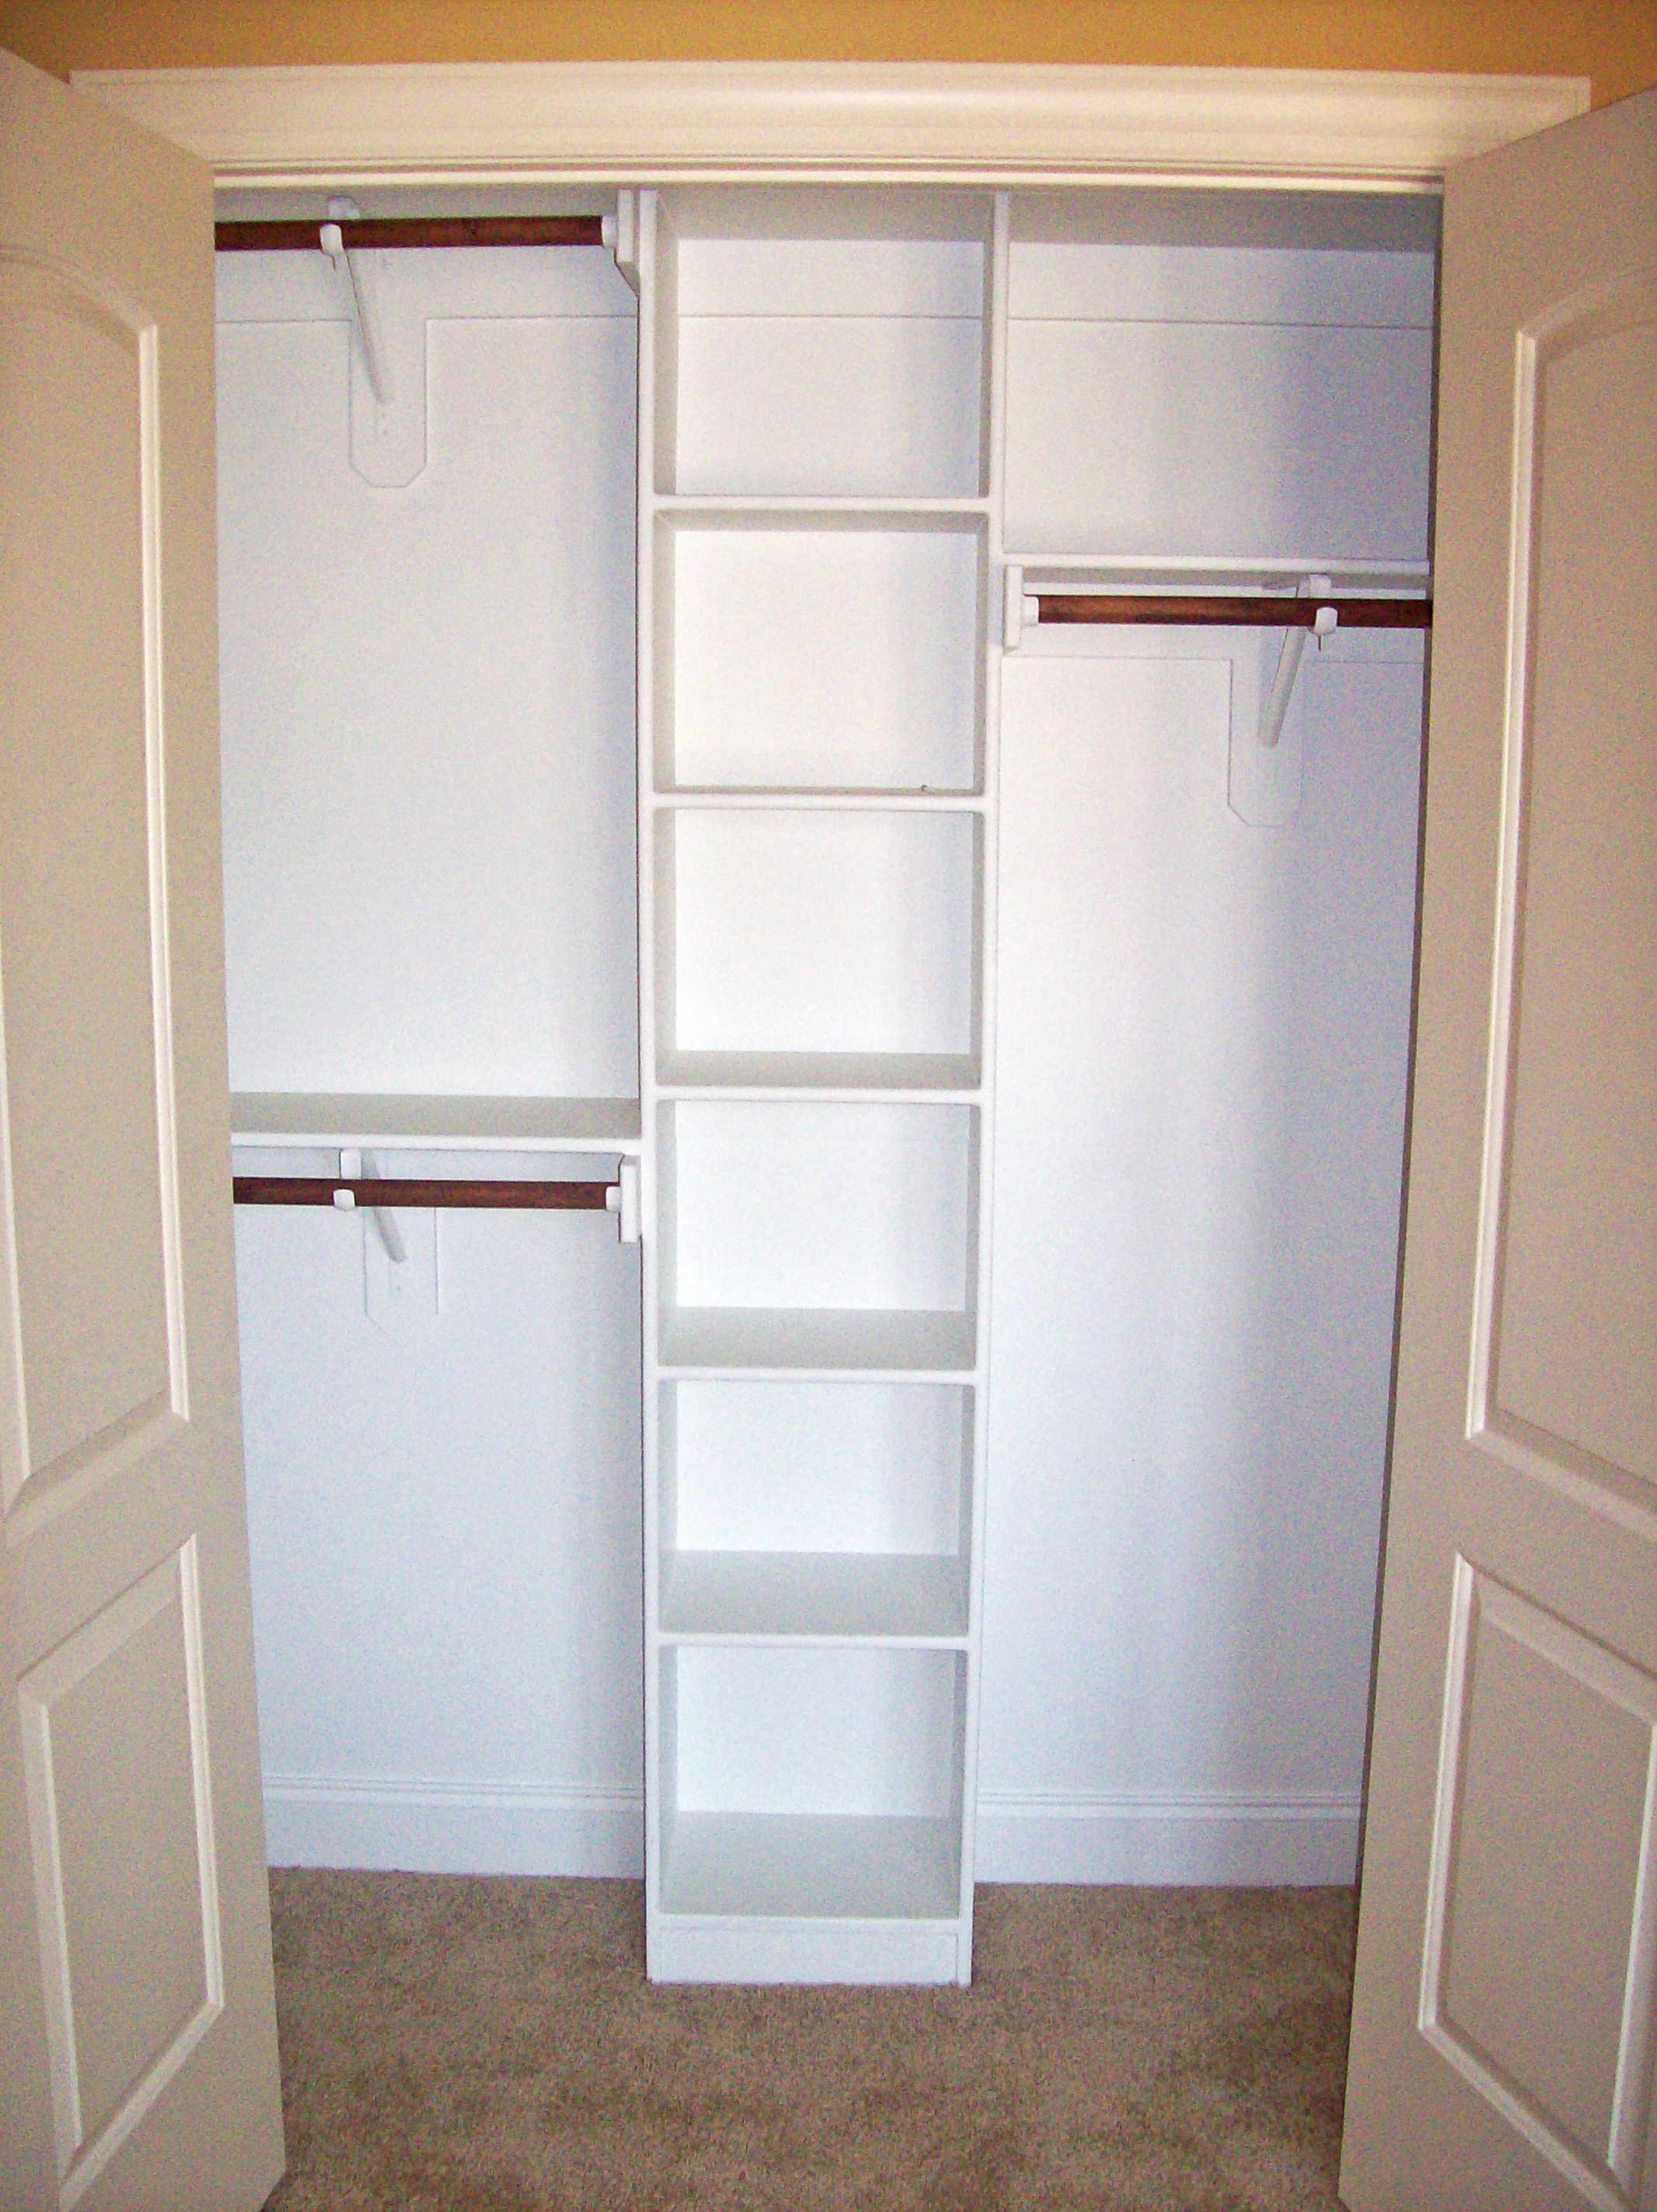 Reach-In Closet with Cubbies, Double Hang, and Long Hang